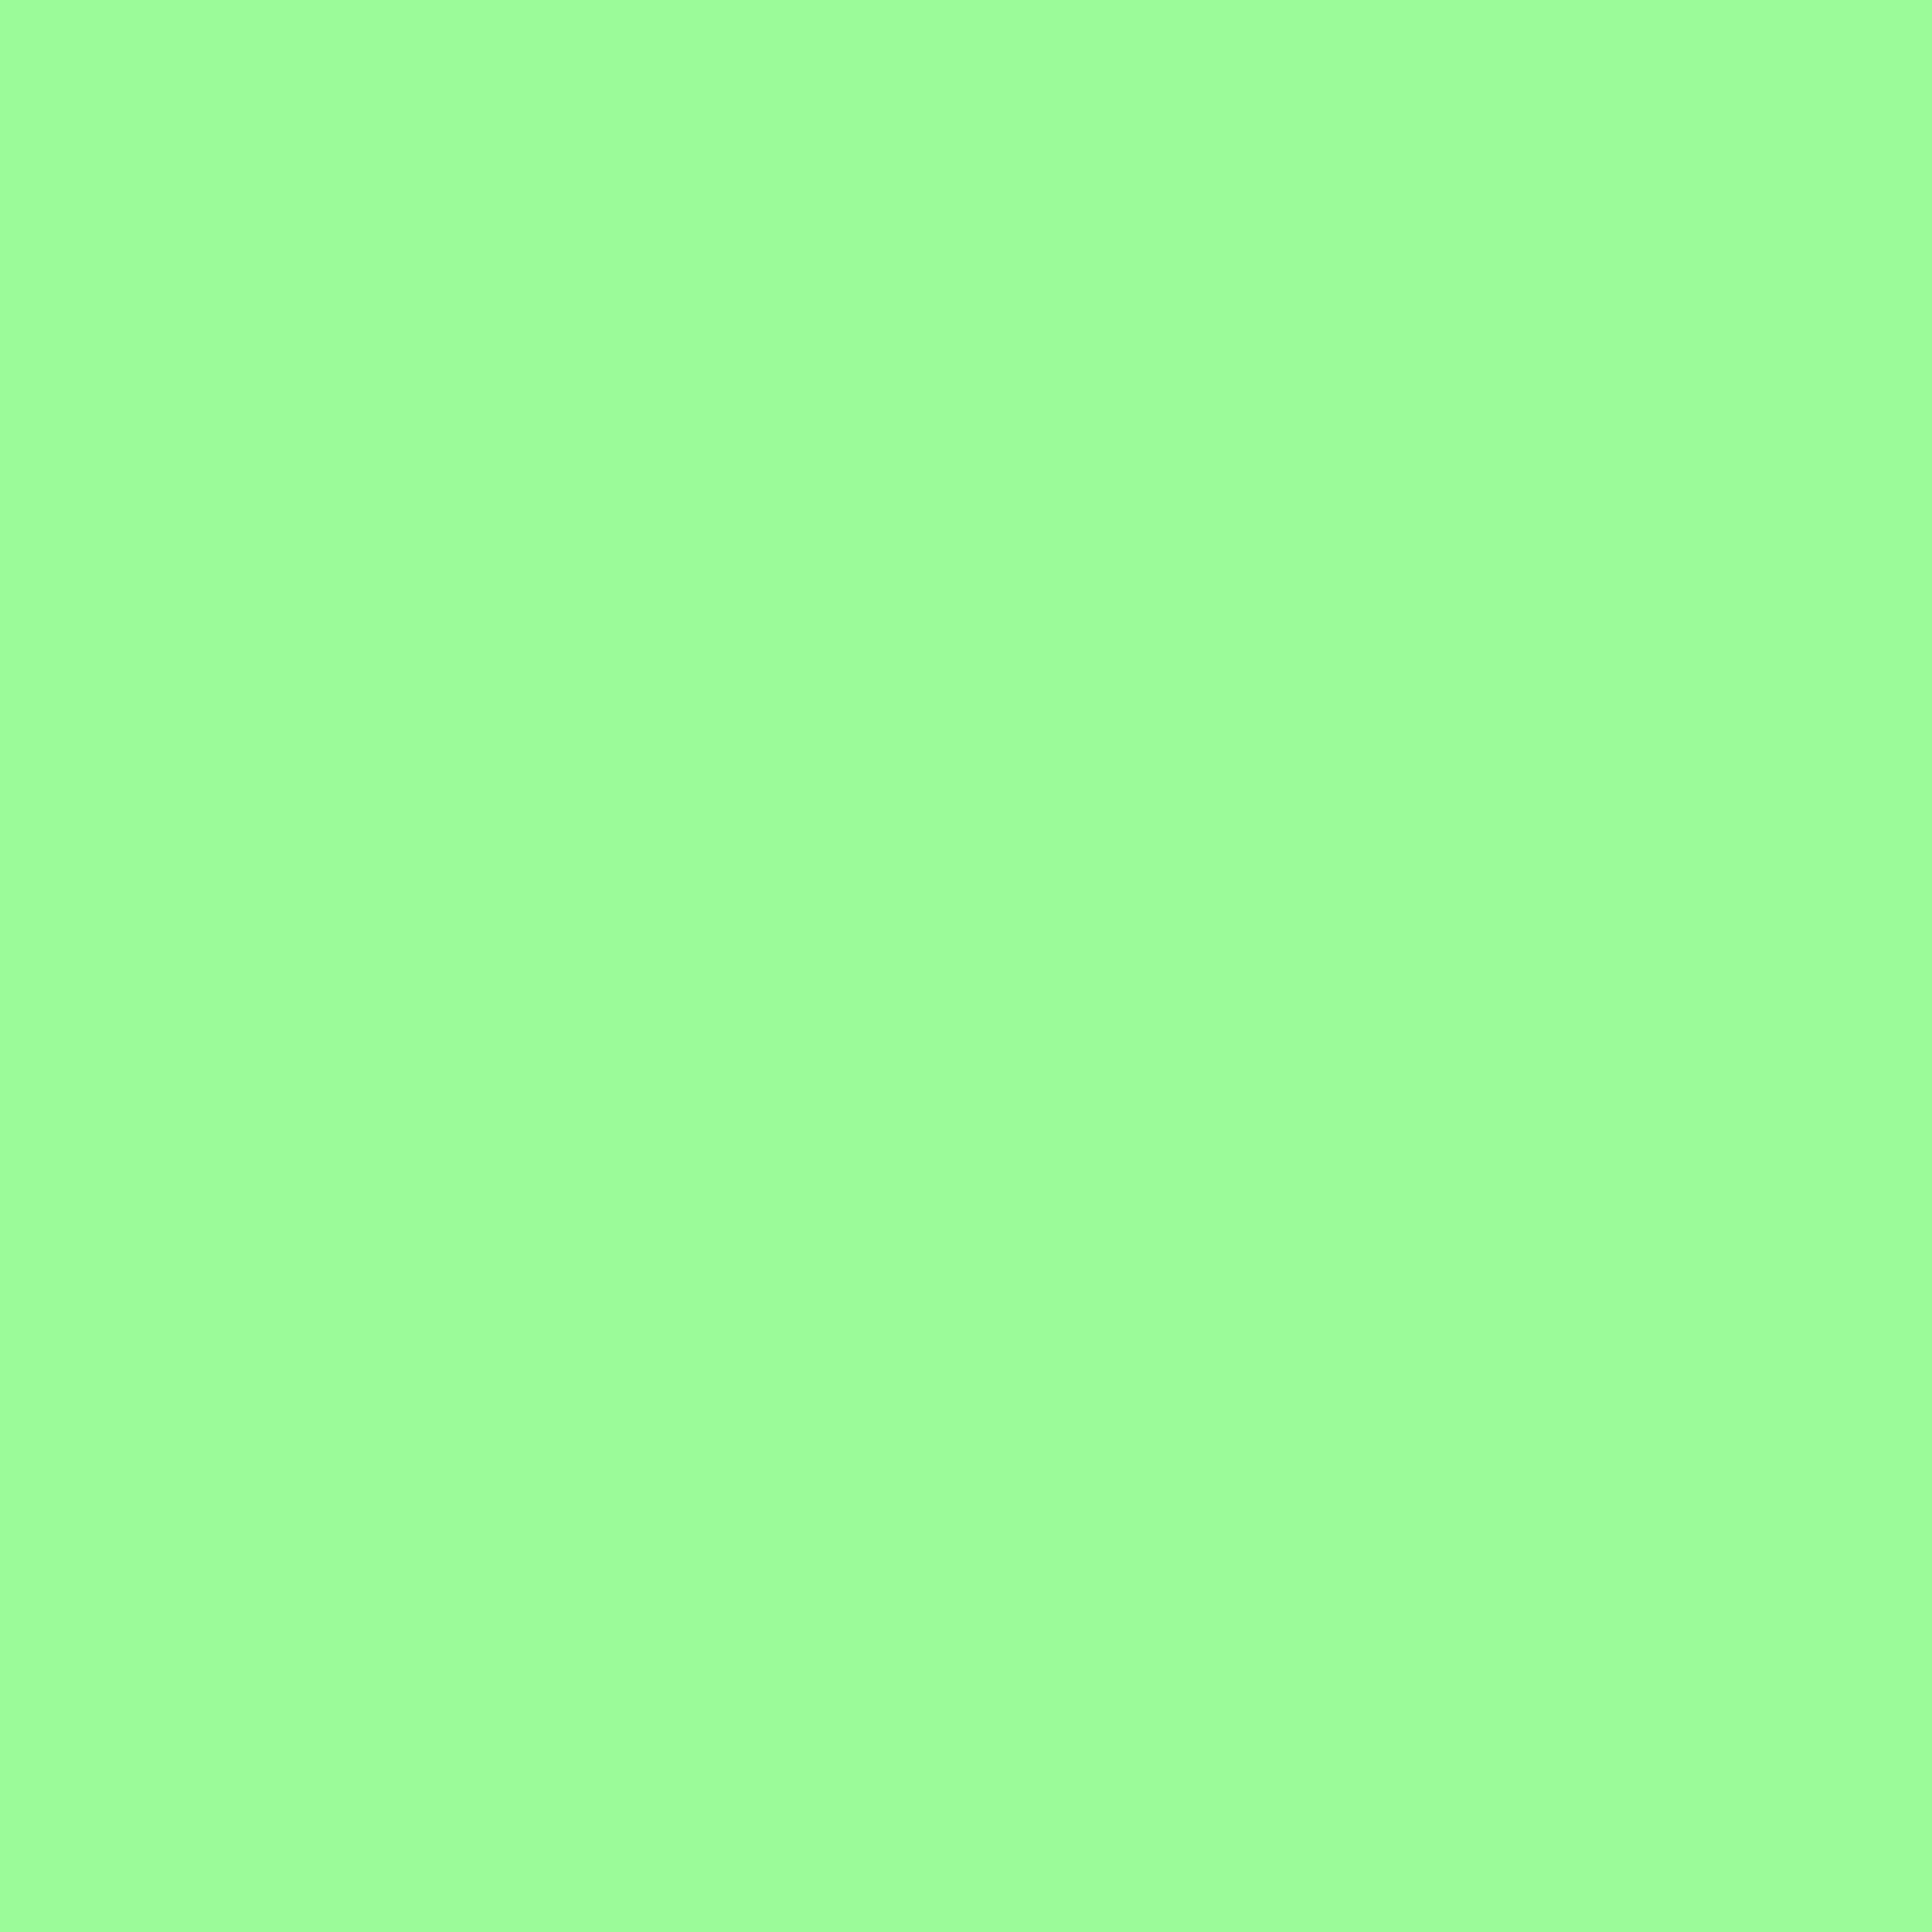 3600x3600 Pale Green Solid Color Background